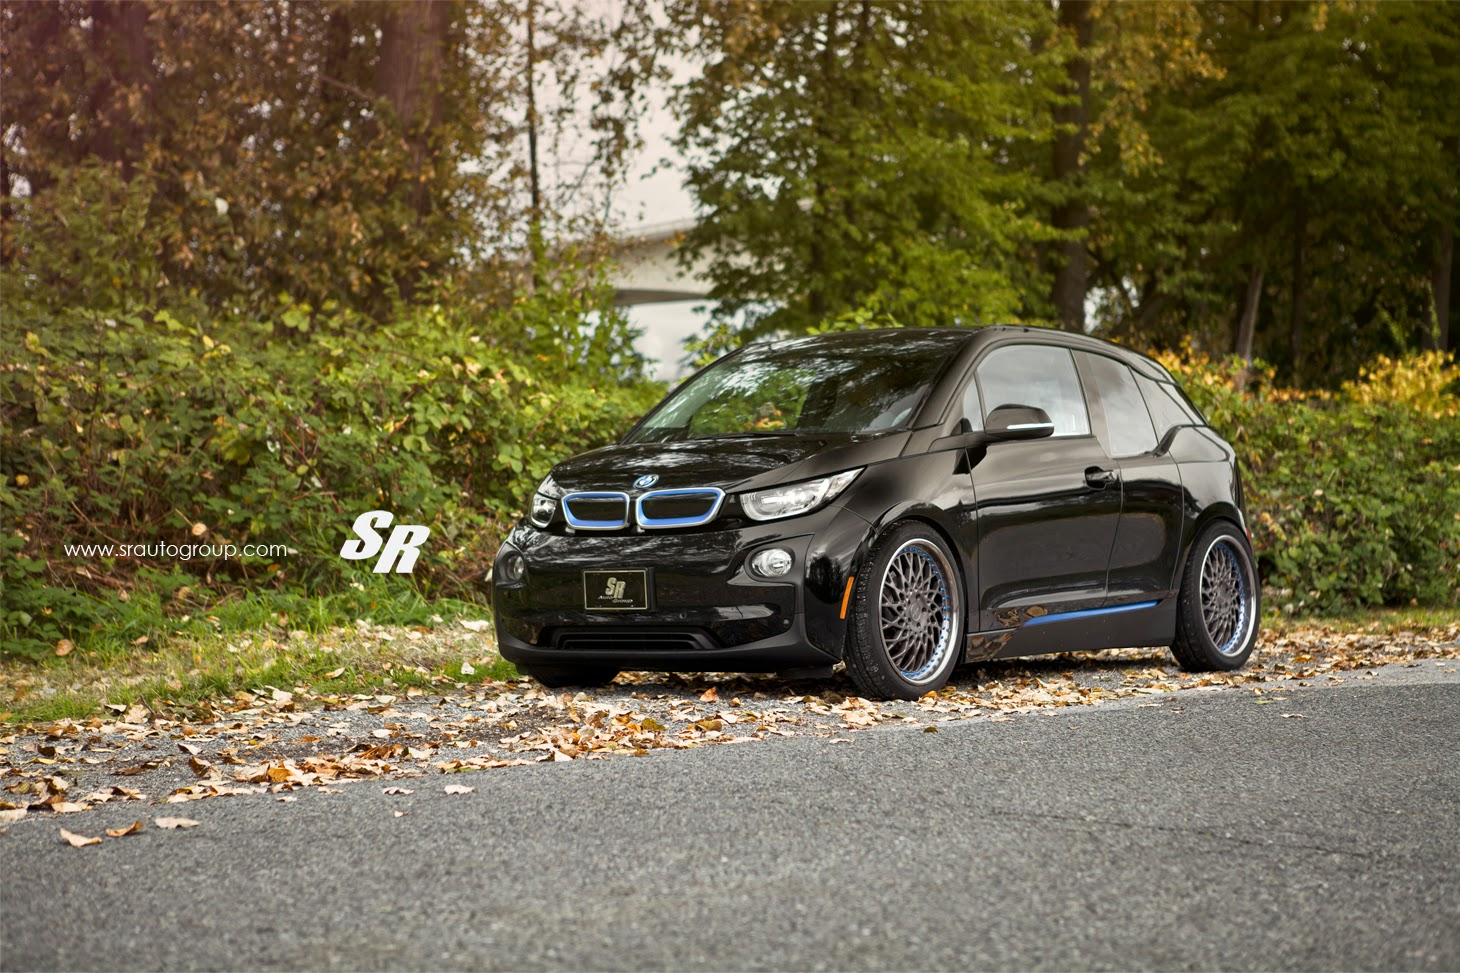 tuning bmw i3 von sr auto group myauto24 das autoblog. Black Bedroom Furniture Sets. Home Design Ideas